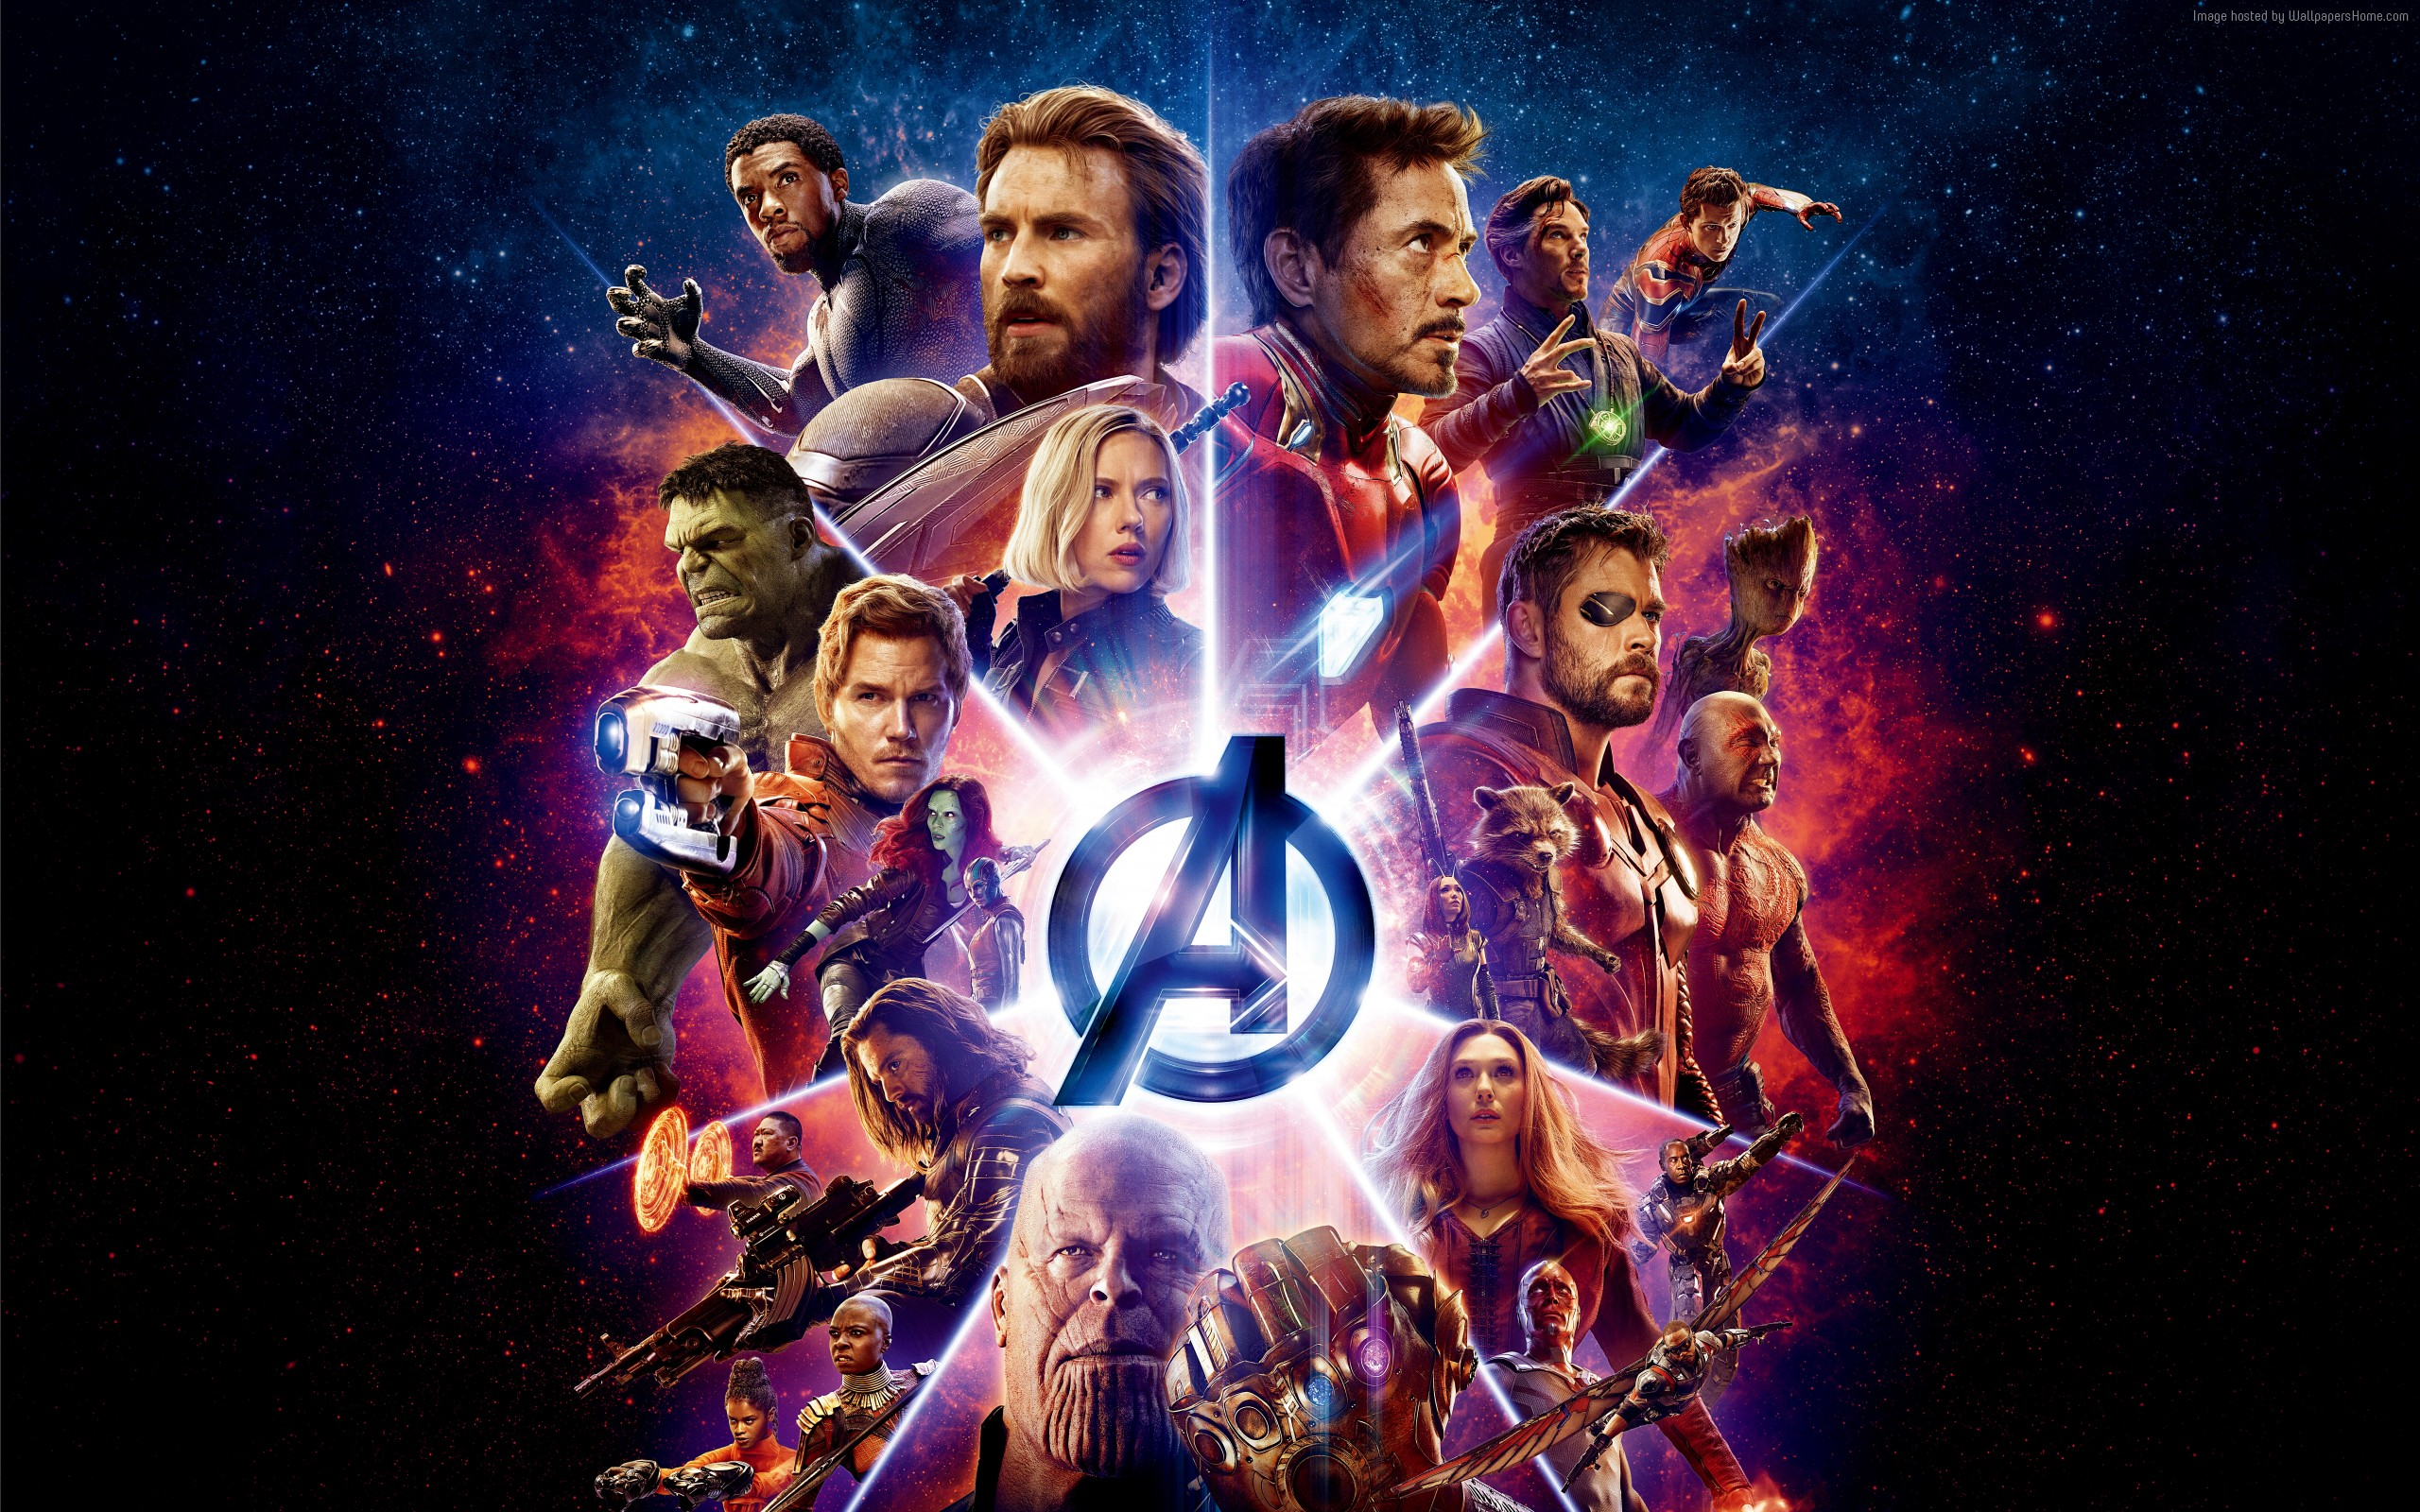 Wallpaper Avengers Infinity War Marvel All heroes Desktop 2560x1600